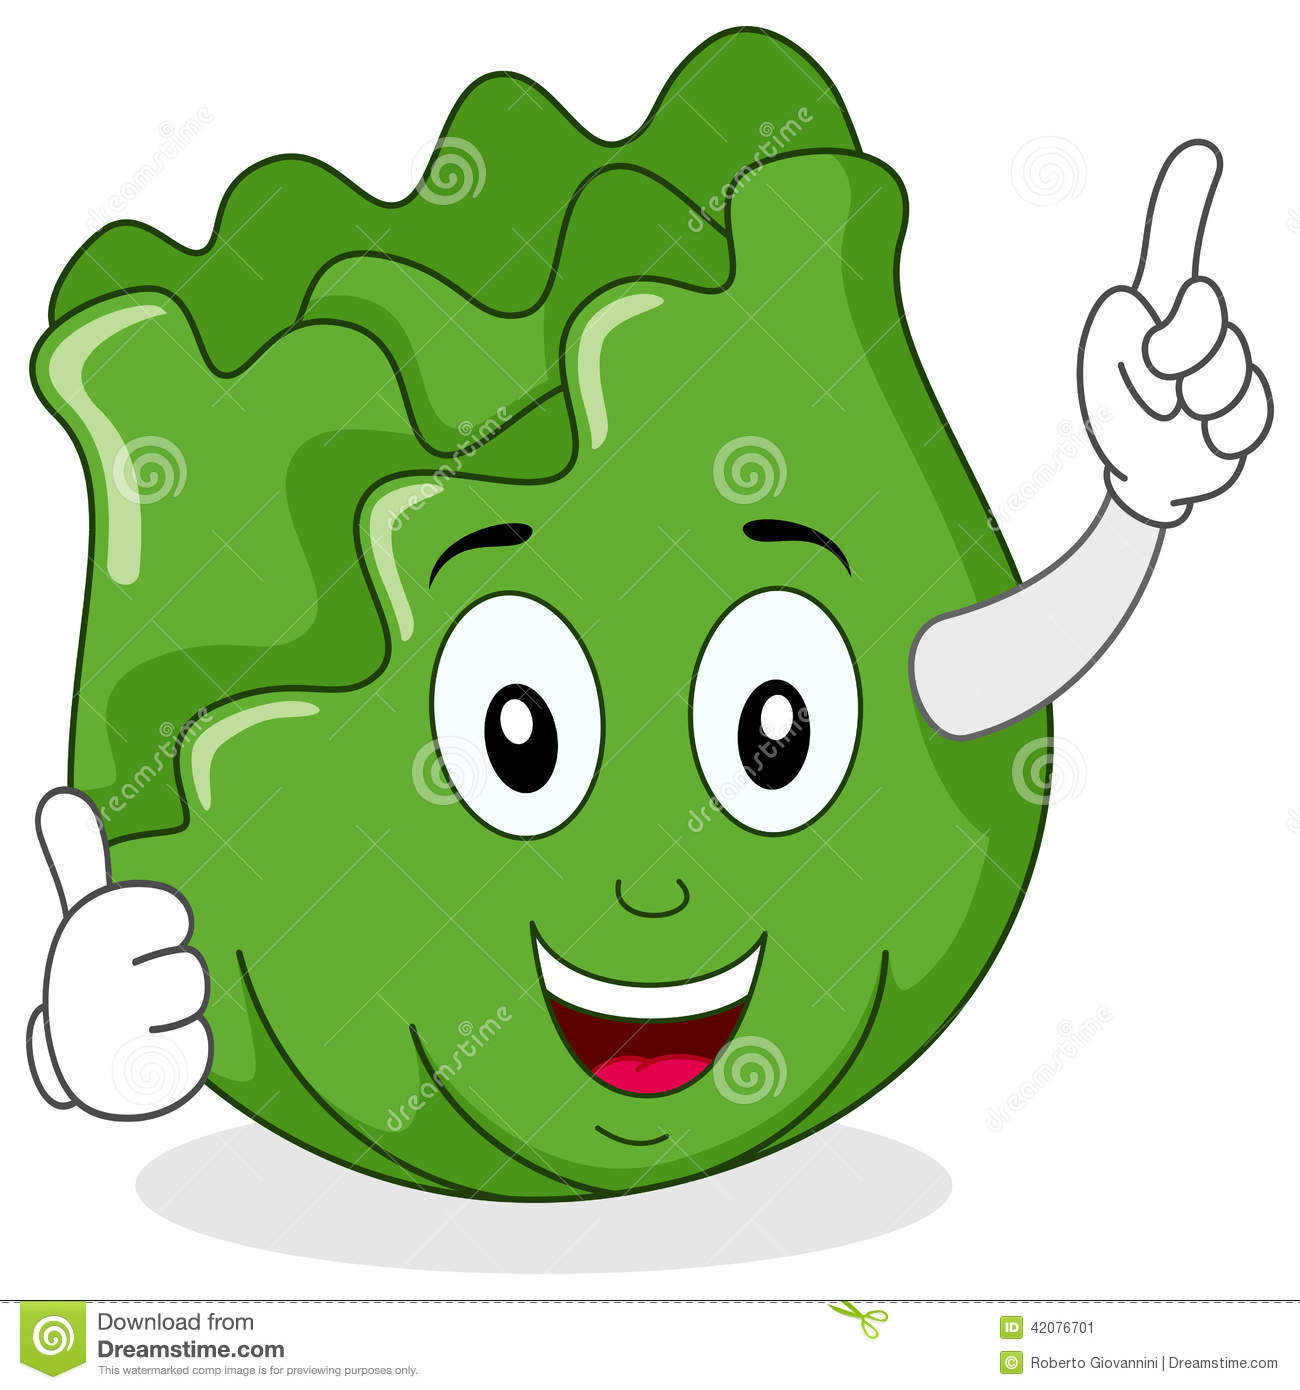 Cabbage clipart cute. Cartoon pencil and in